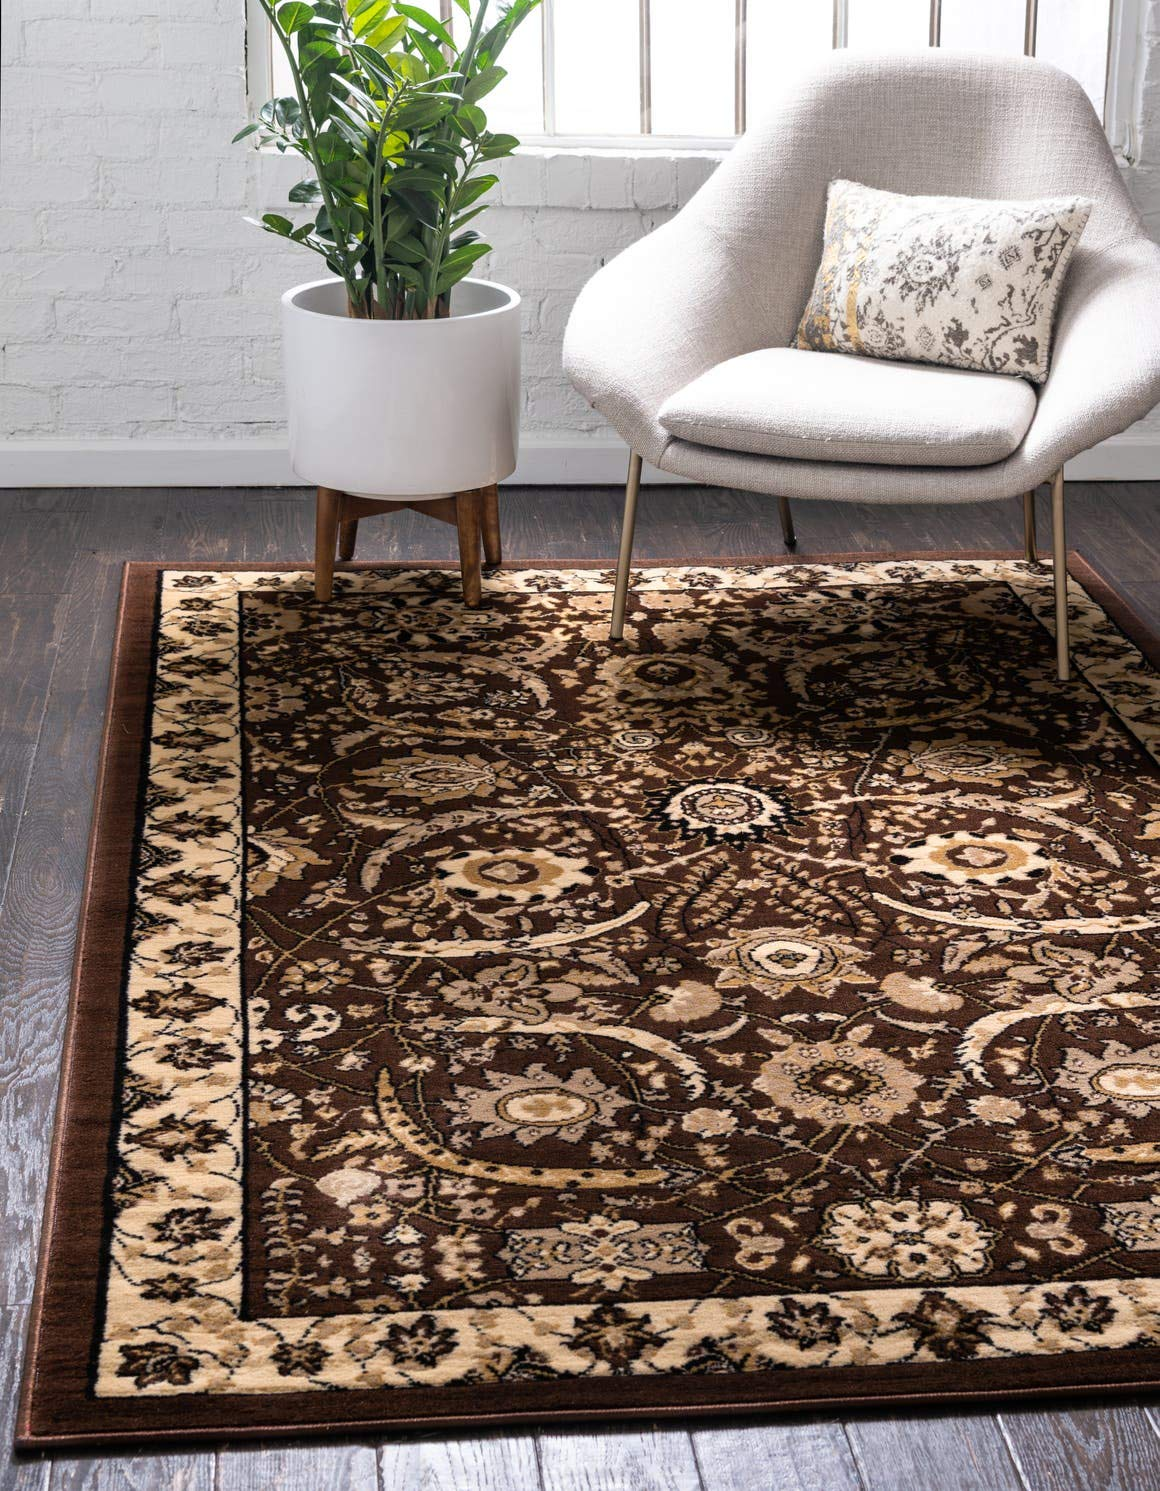 Unique Loom Espahan Collection Classic Traditional Brown Area Rug 5 0 x 8 0